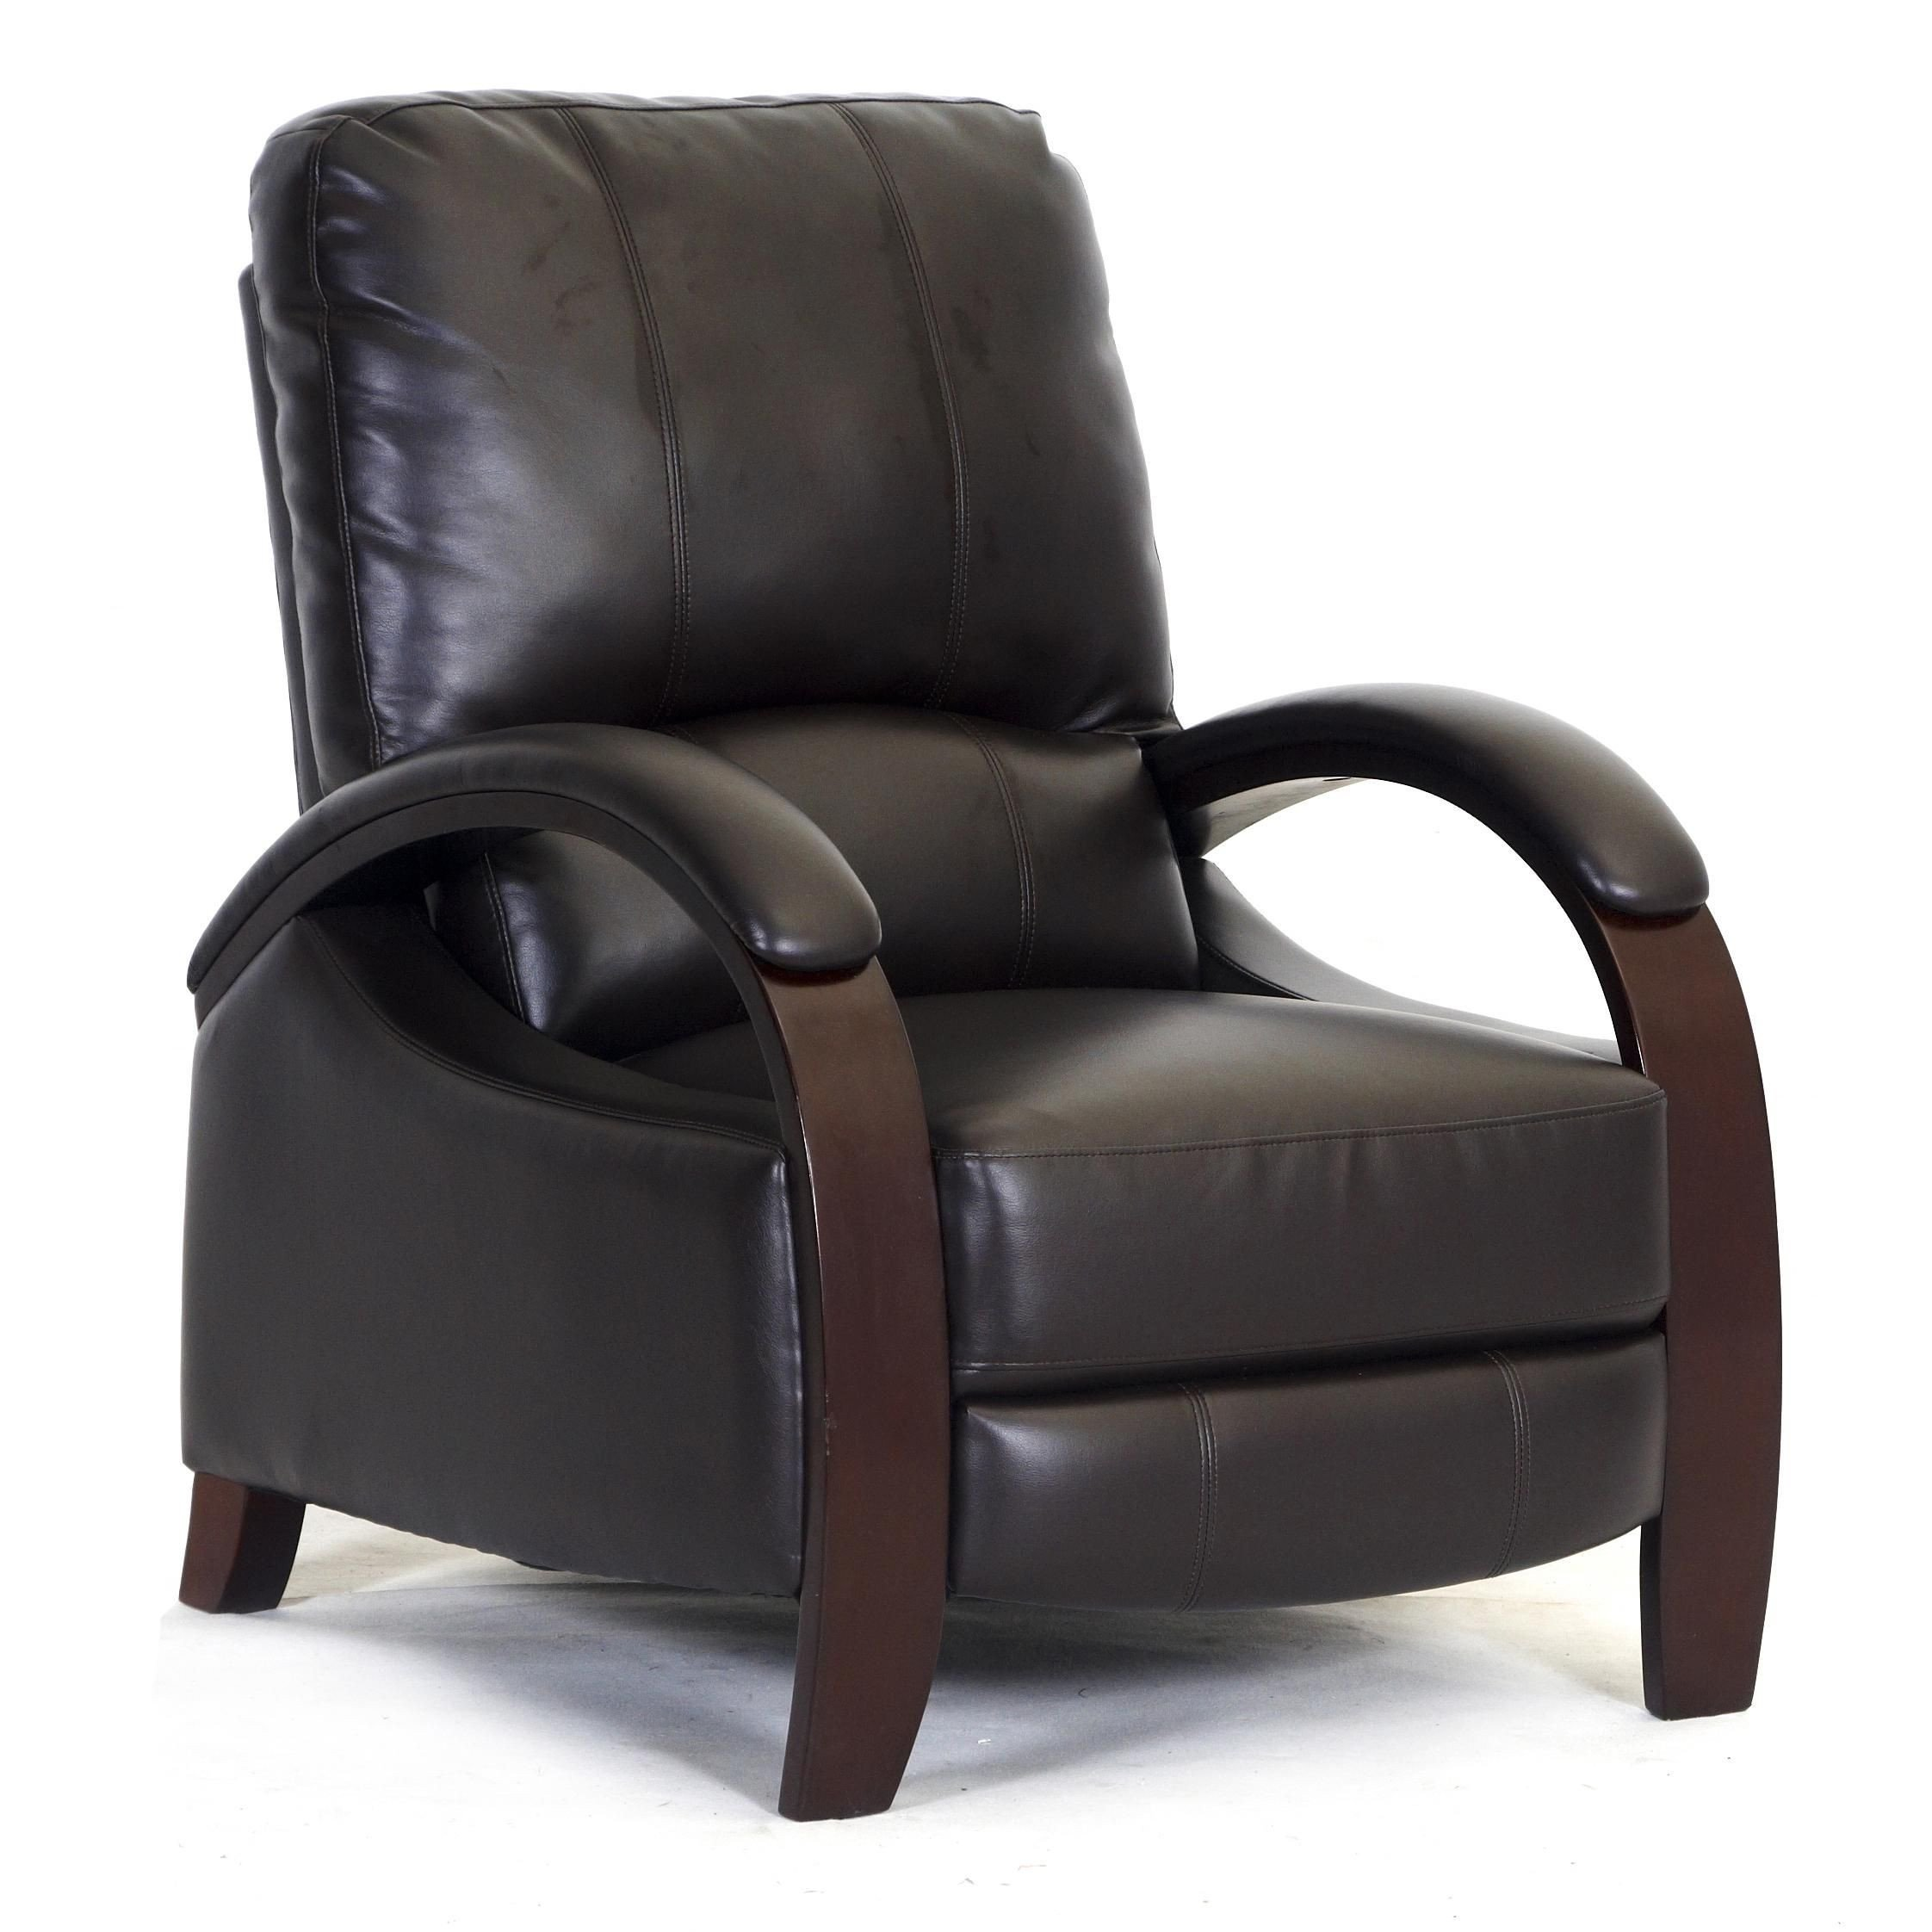 Small Recliners for Bedroom Beautiful 792 Reclining Push Thru Arm Chair by Synergy Home